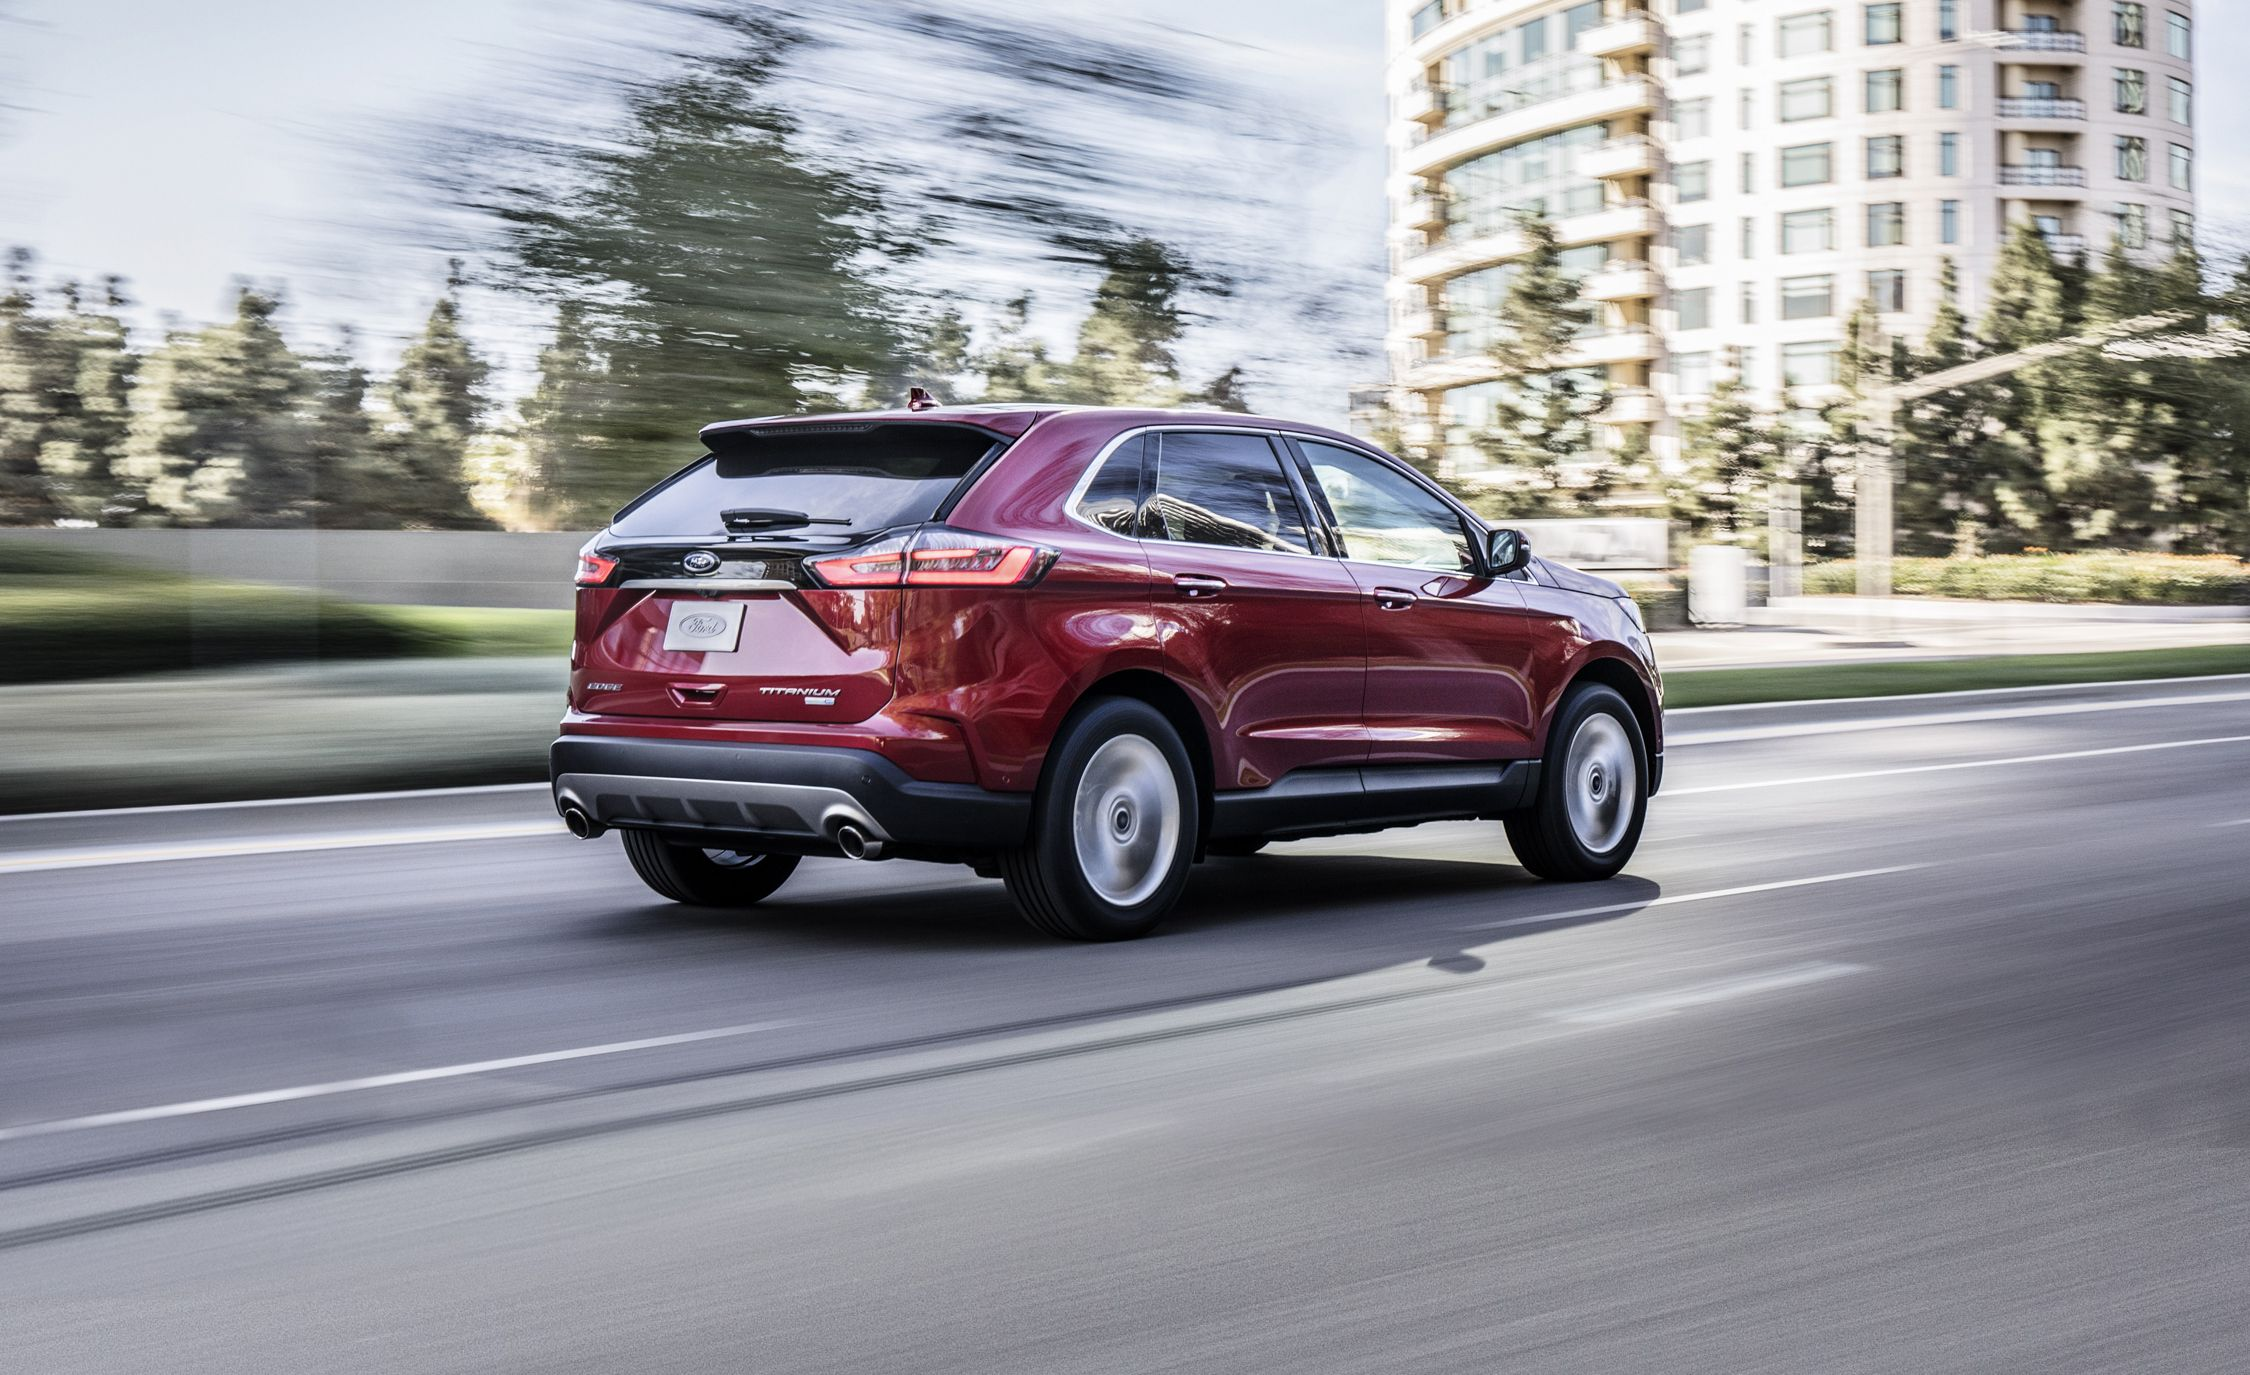 Ford Edge Priced Starting At  Gets Better Mpg And More Standard Safety Tech